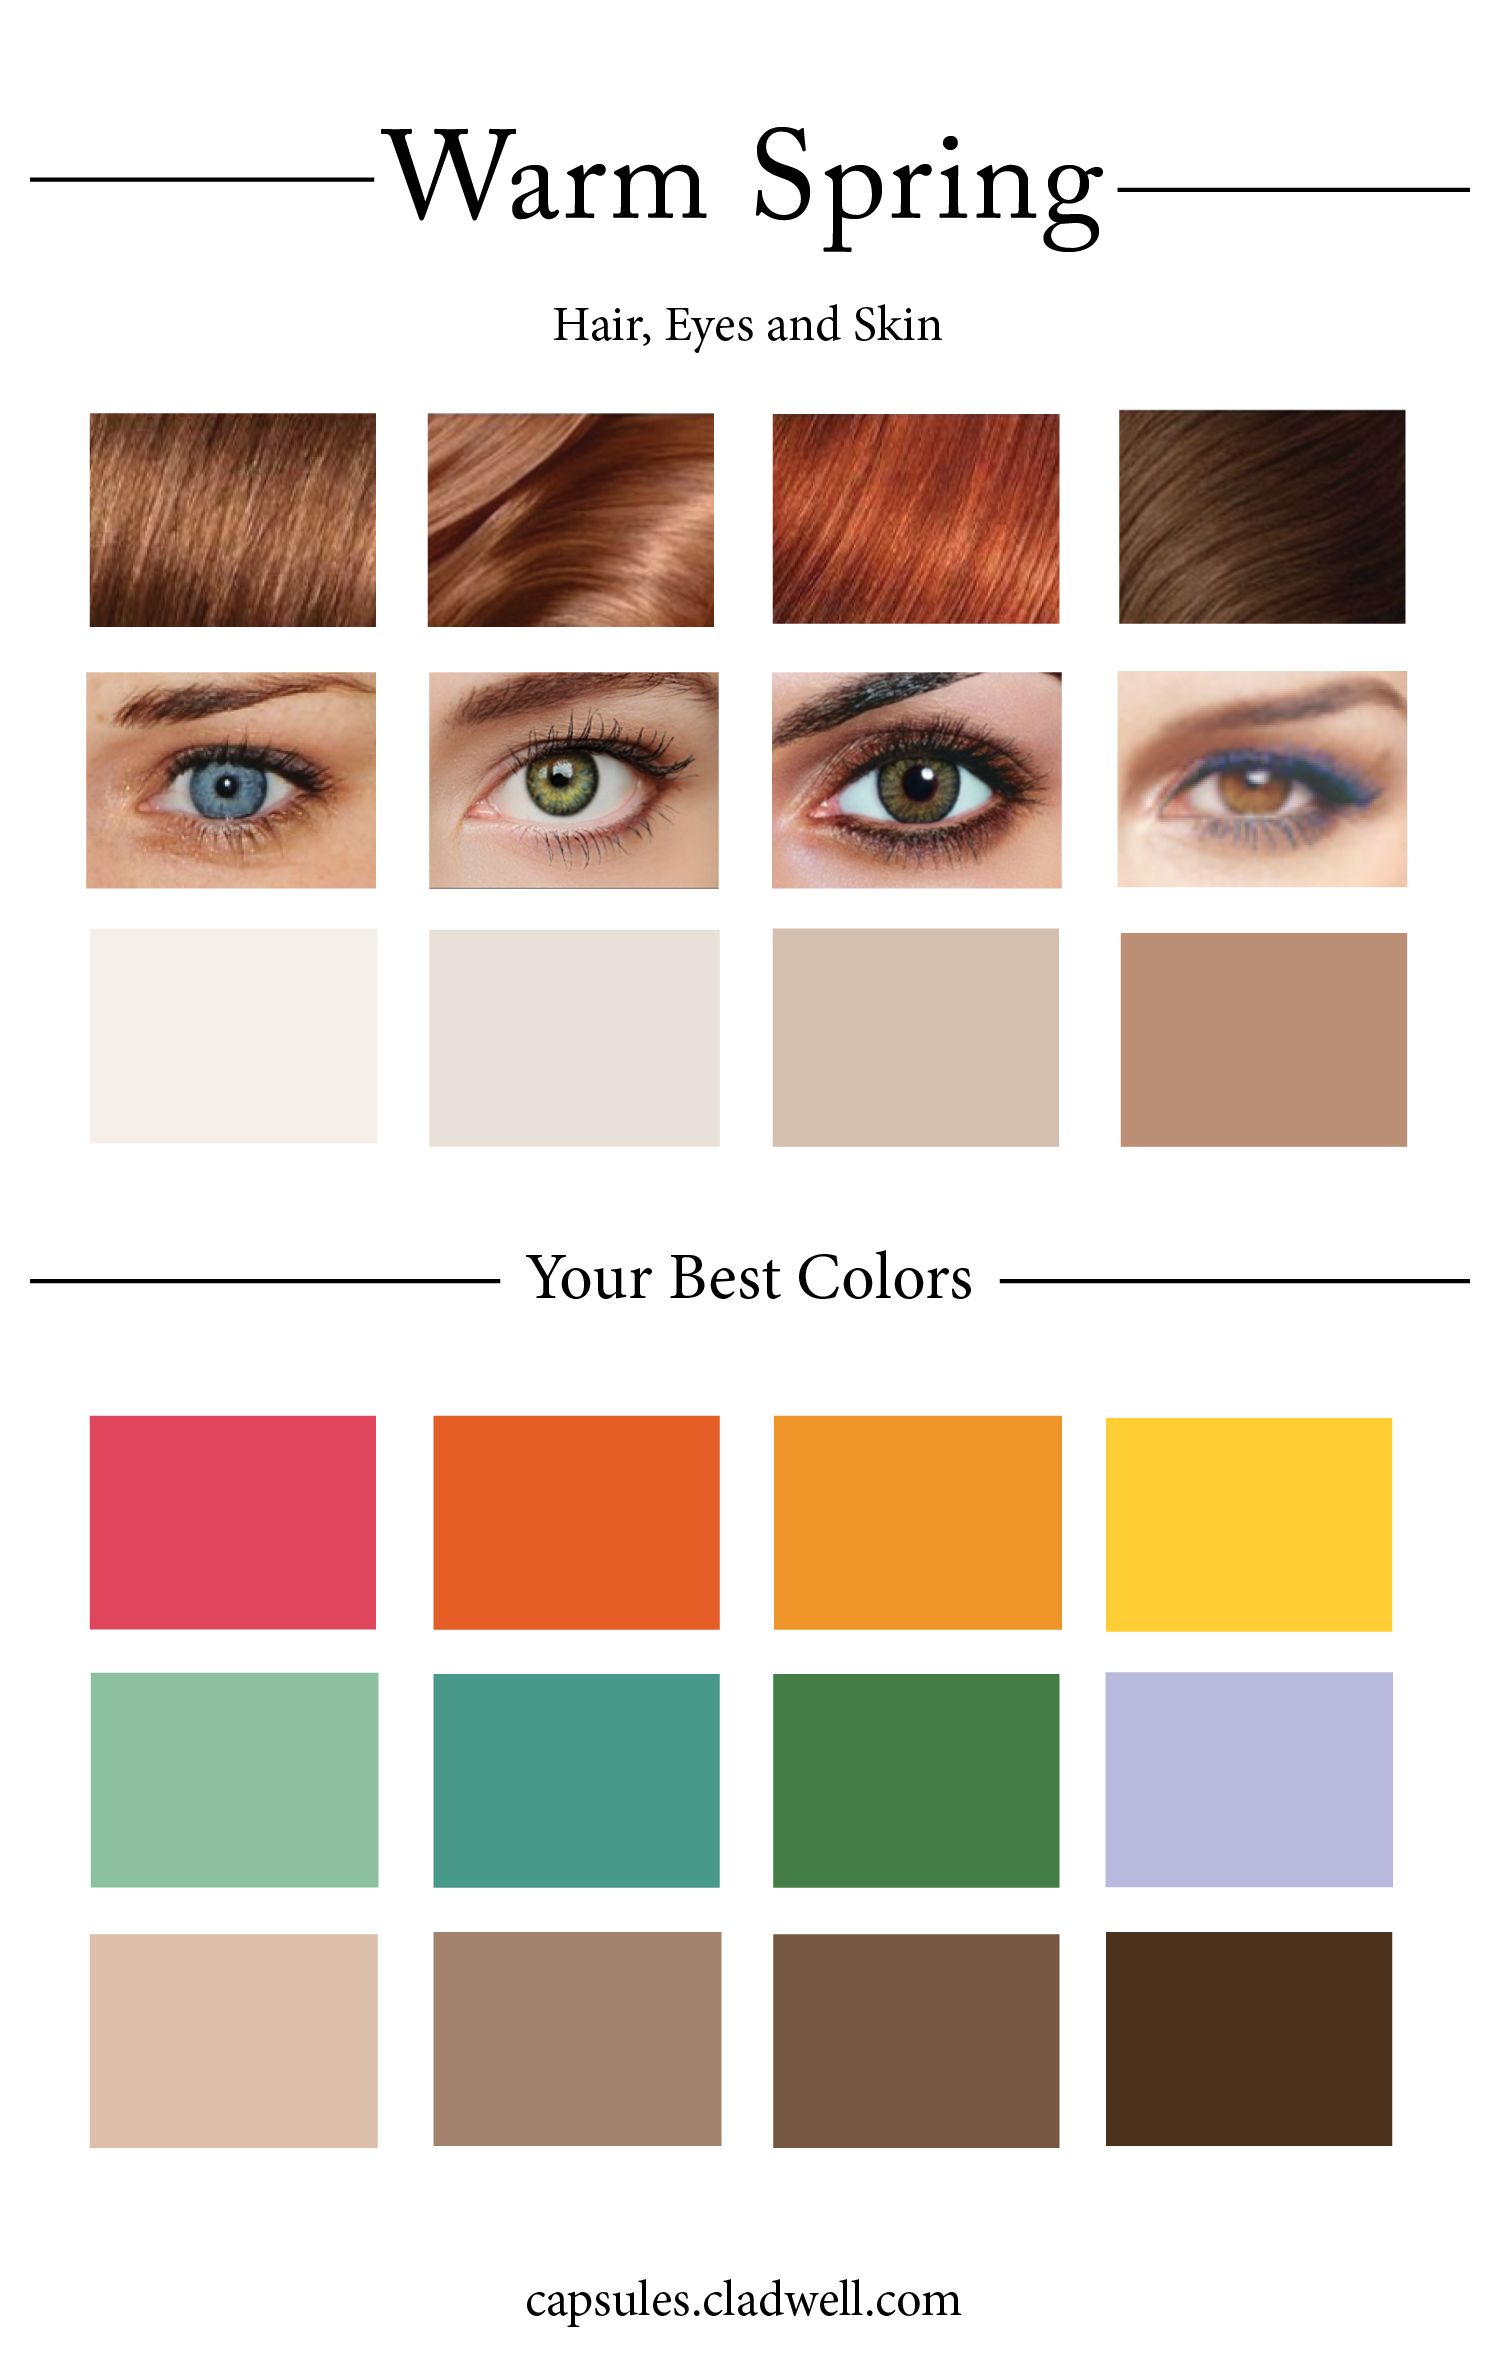 How To Create Your Personal Color Palette Plus Take Our Color Quiz Cladwell Color Quiz Autumn Skin Soft Autumn,Cheapest City To Buy A House In Georgia